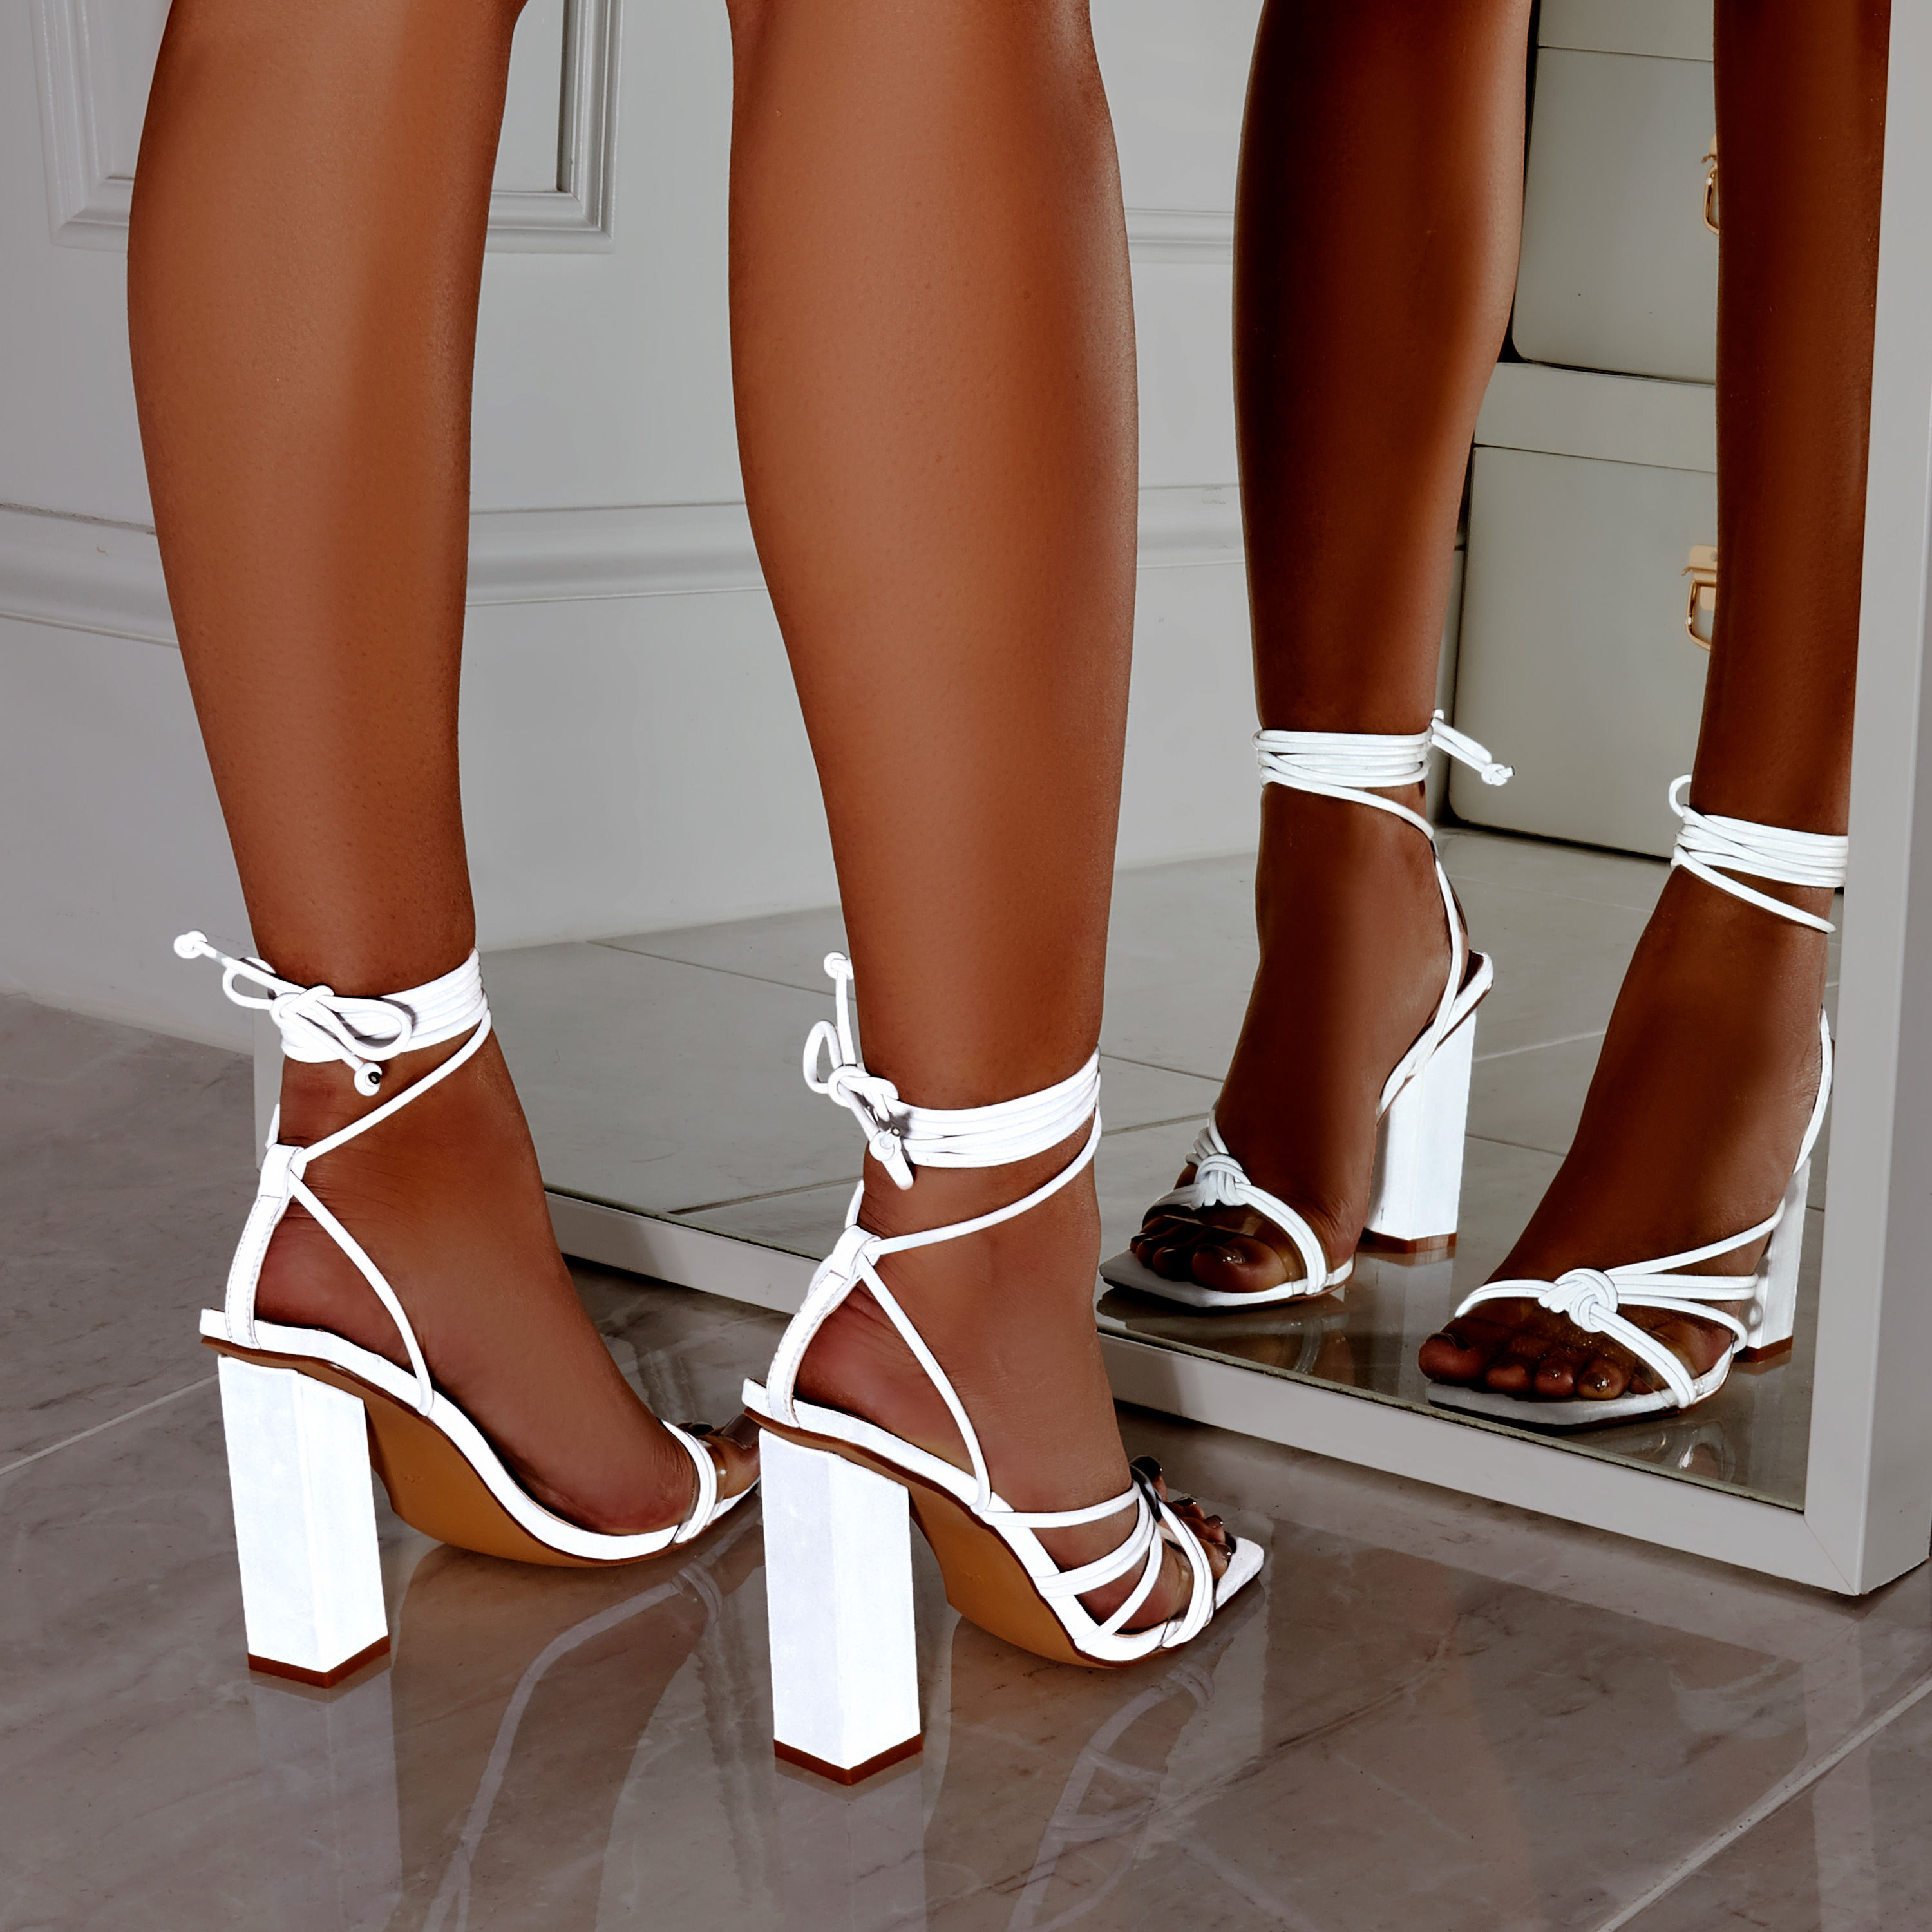 Neima Lace Up Square Toe Perspex Block Heel In Reflective Silver Faux Leather